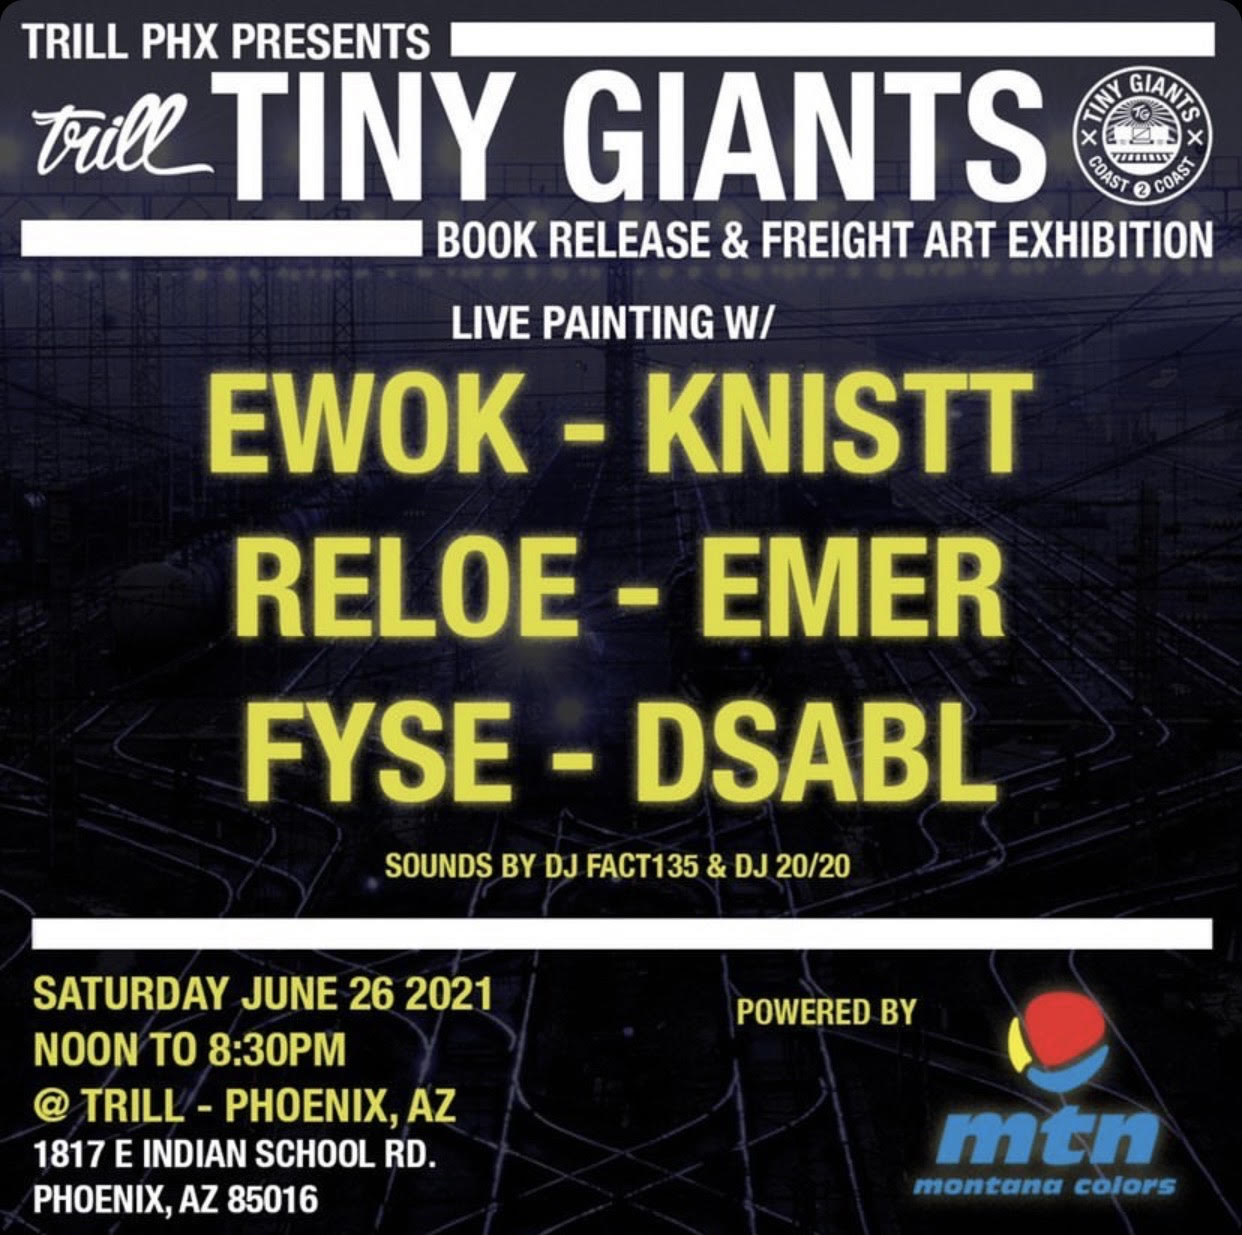 Tiny Giants Book Release